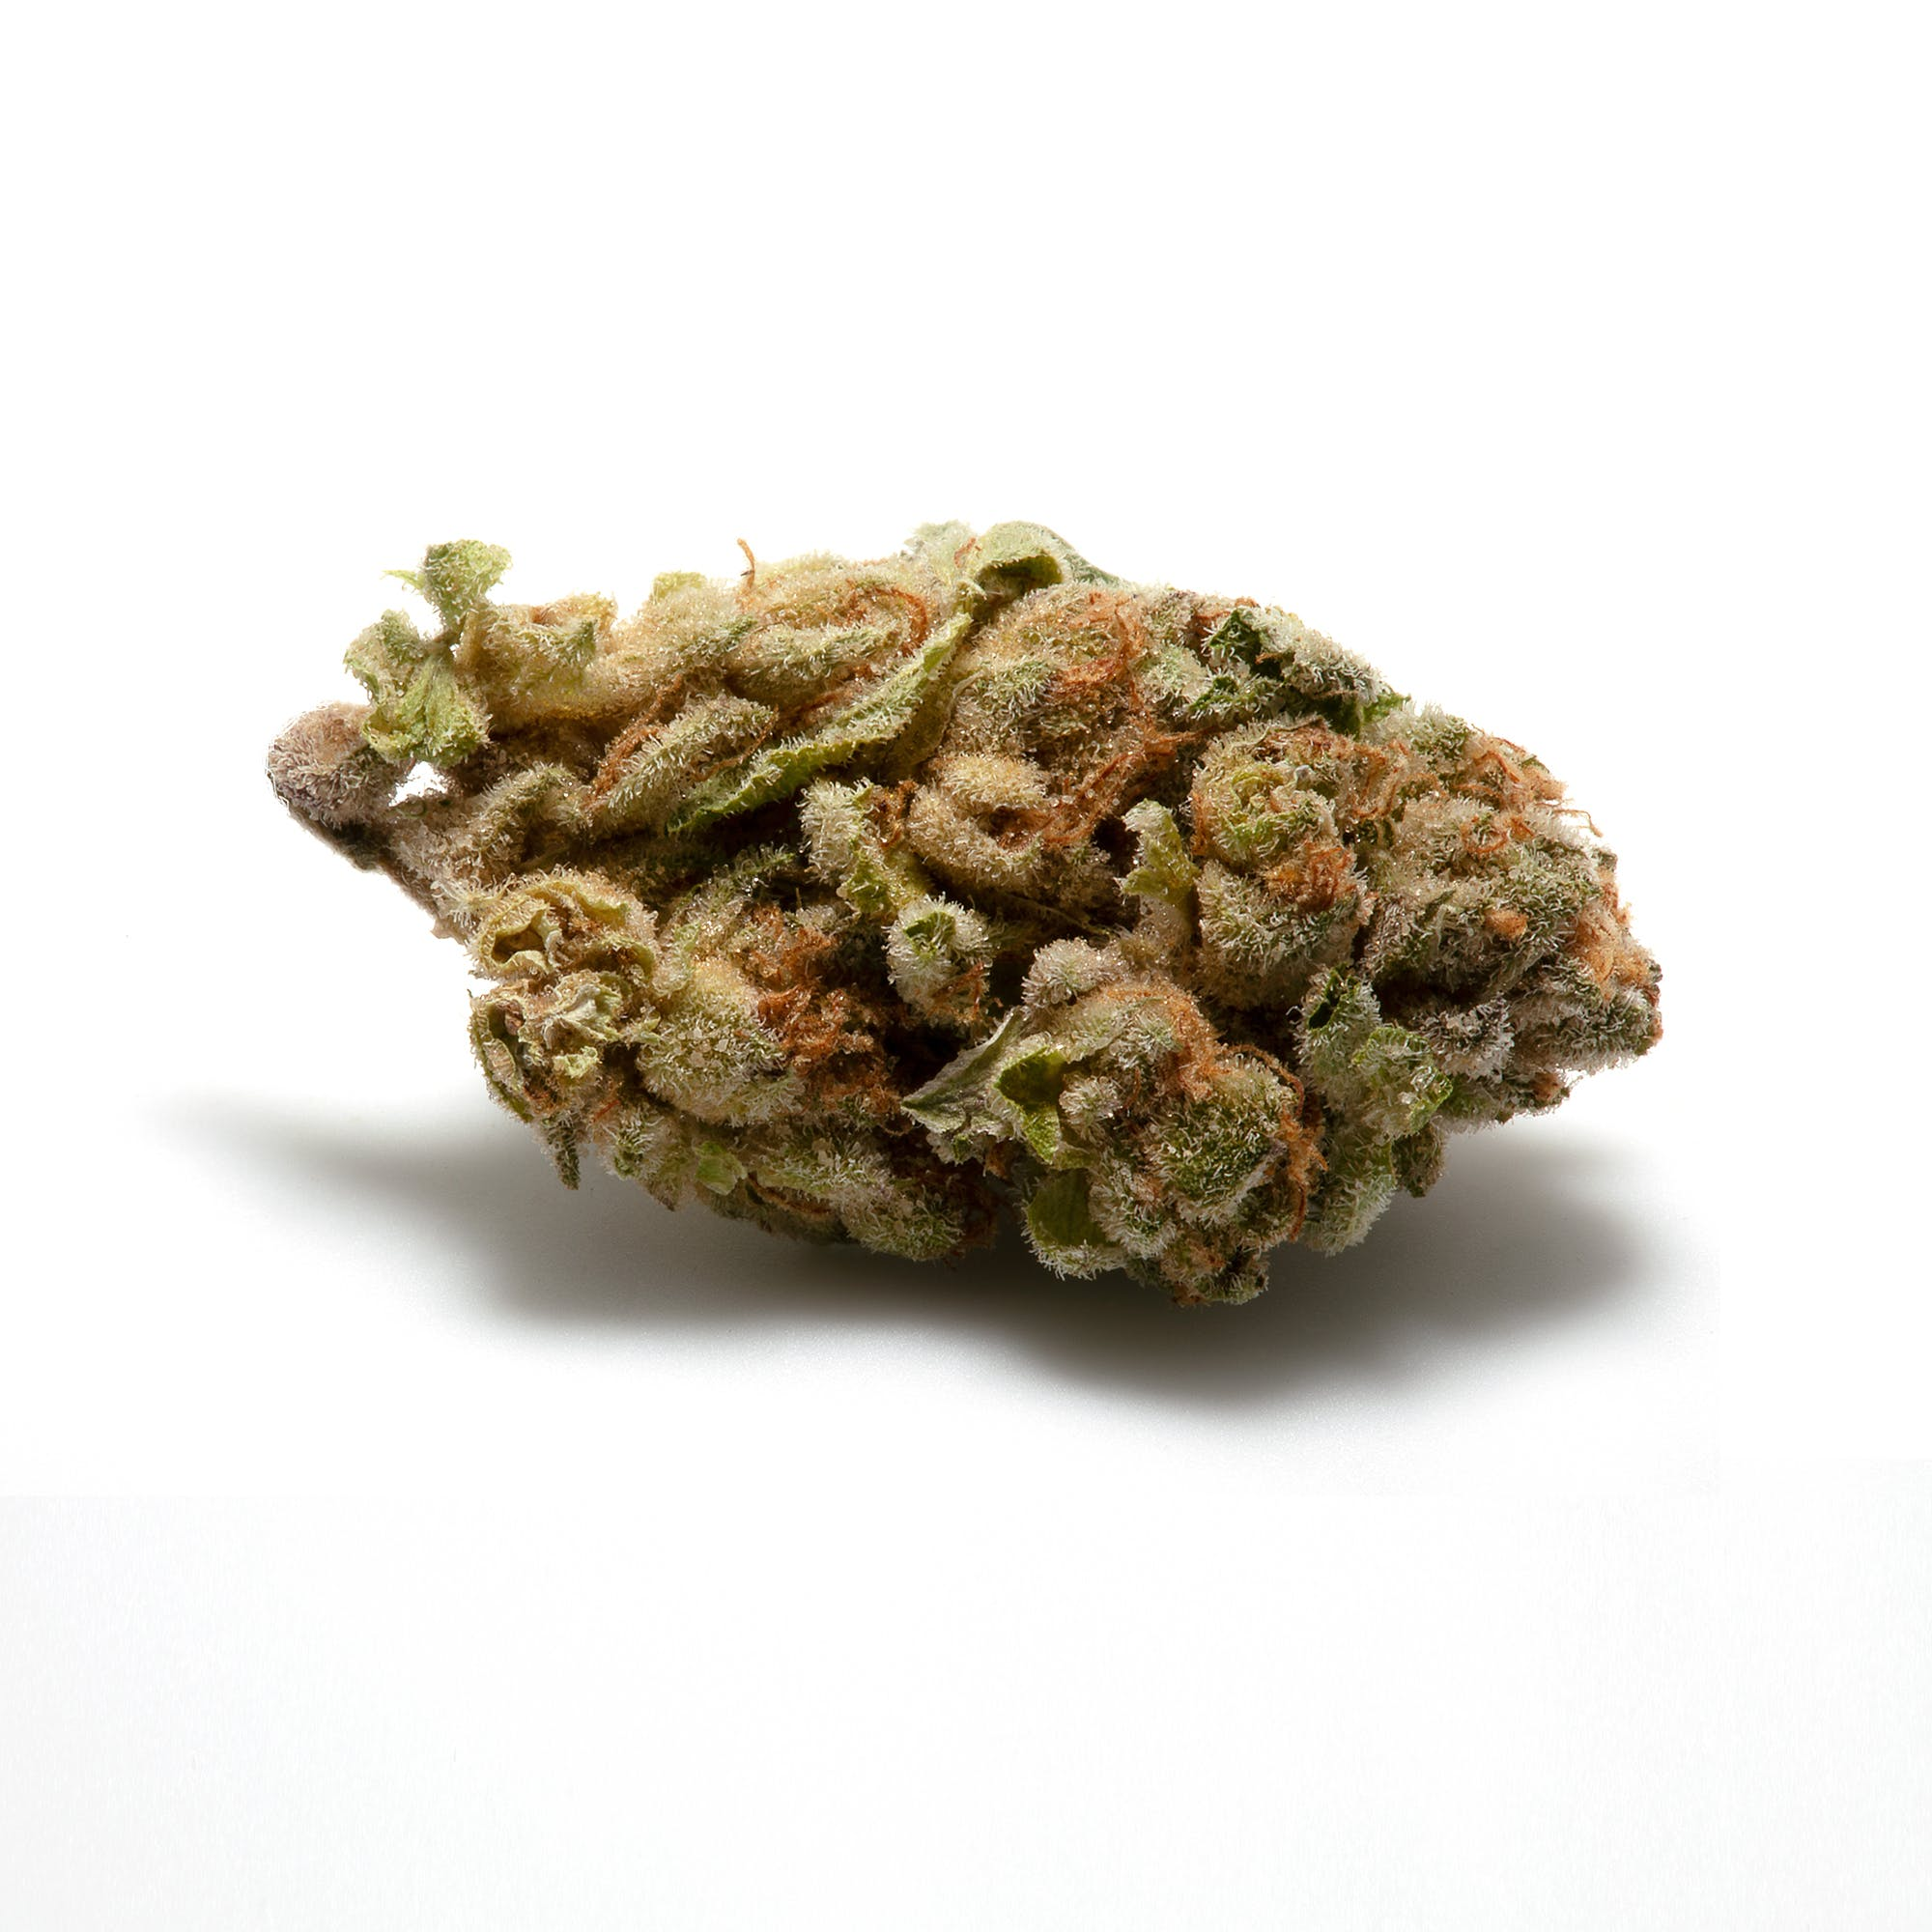 marijuana-dispensaries-the-green-gris-gris-in-shawnee-moon-drops